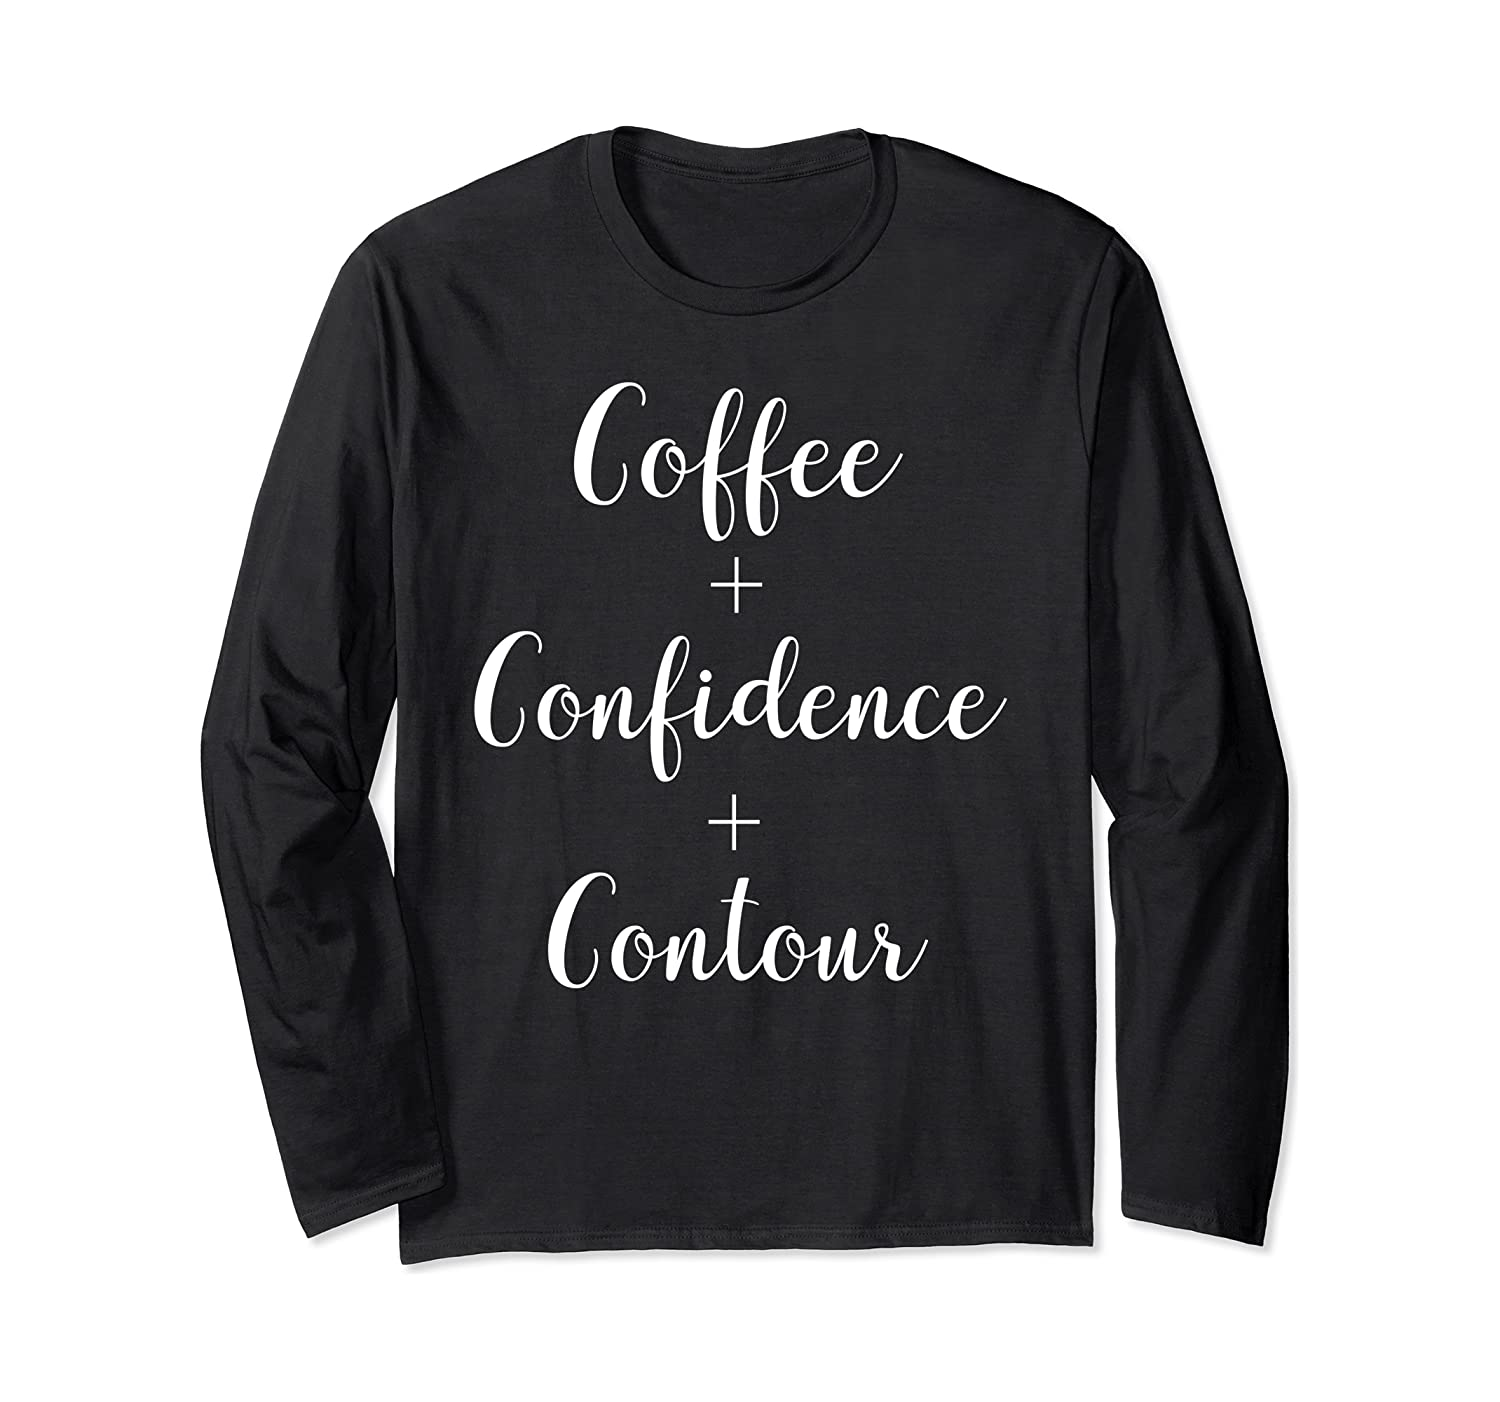 Funny Coffee + Confidence + Contour Empowering Women Long Sleeve T-Shirt